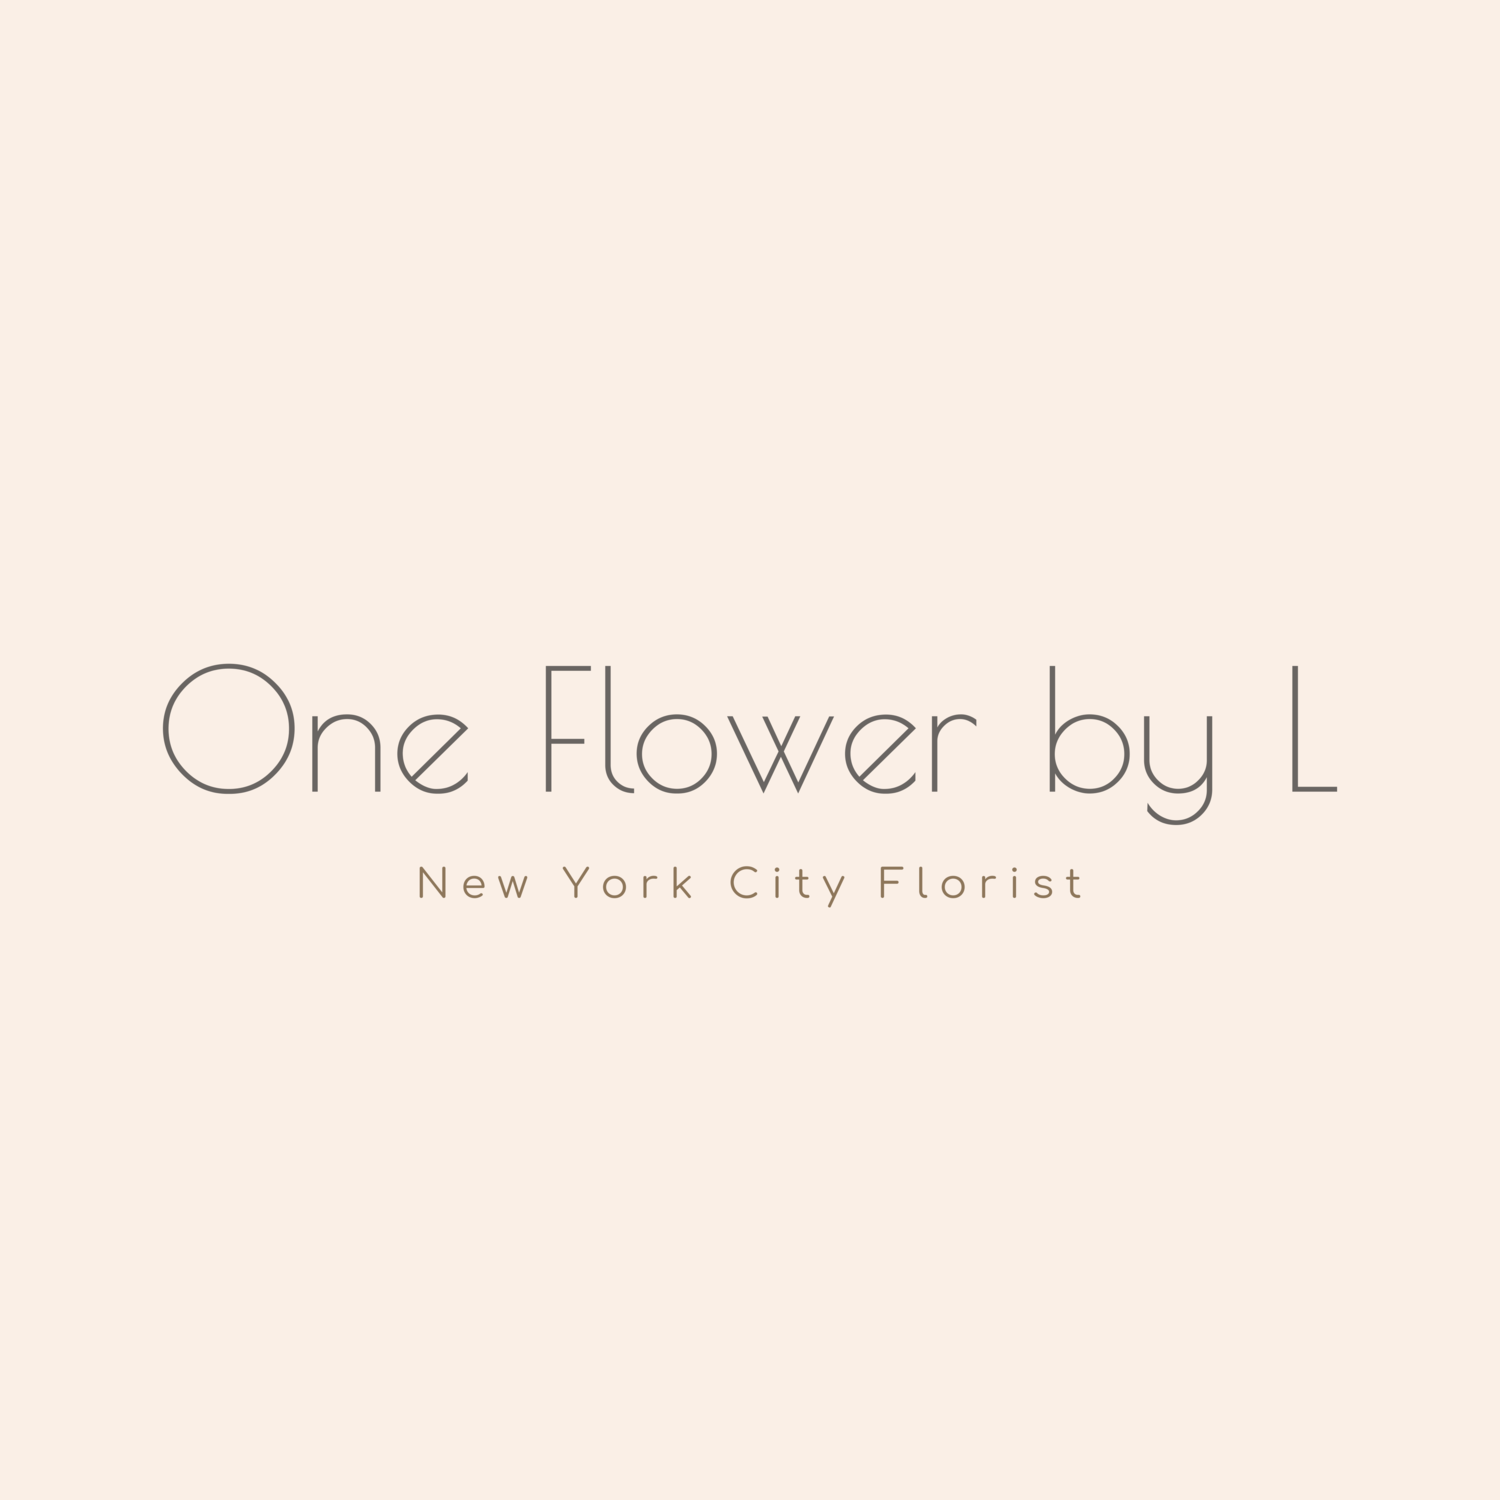 One flower by L